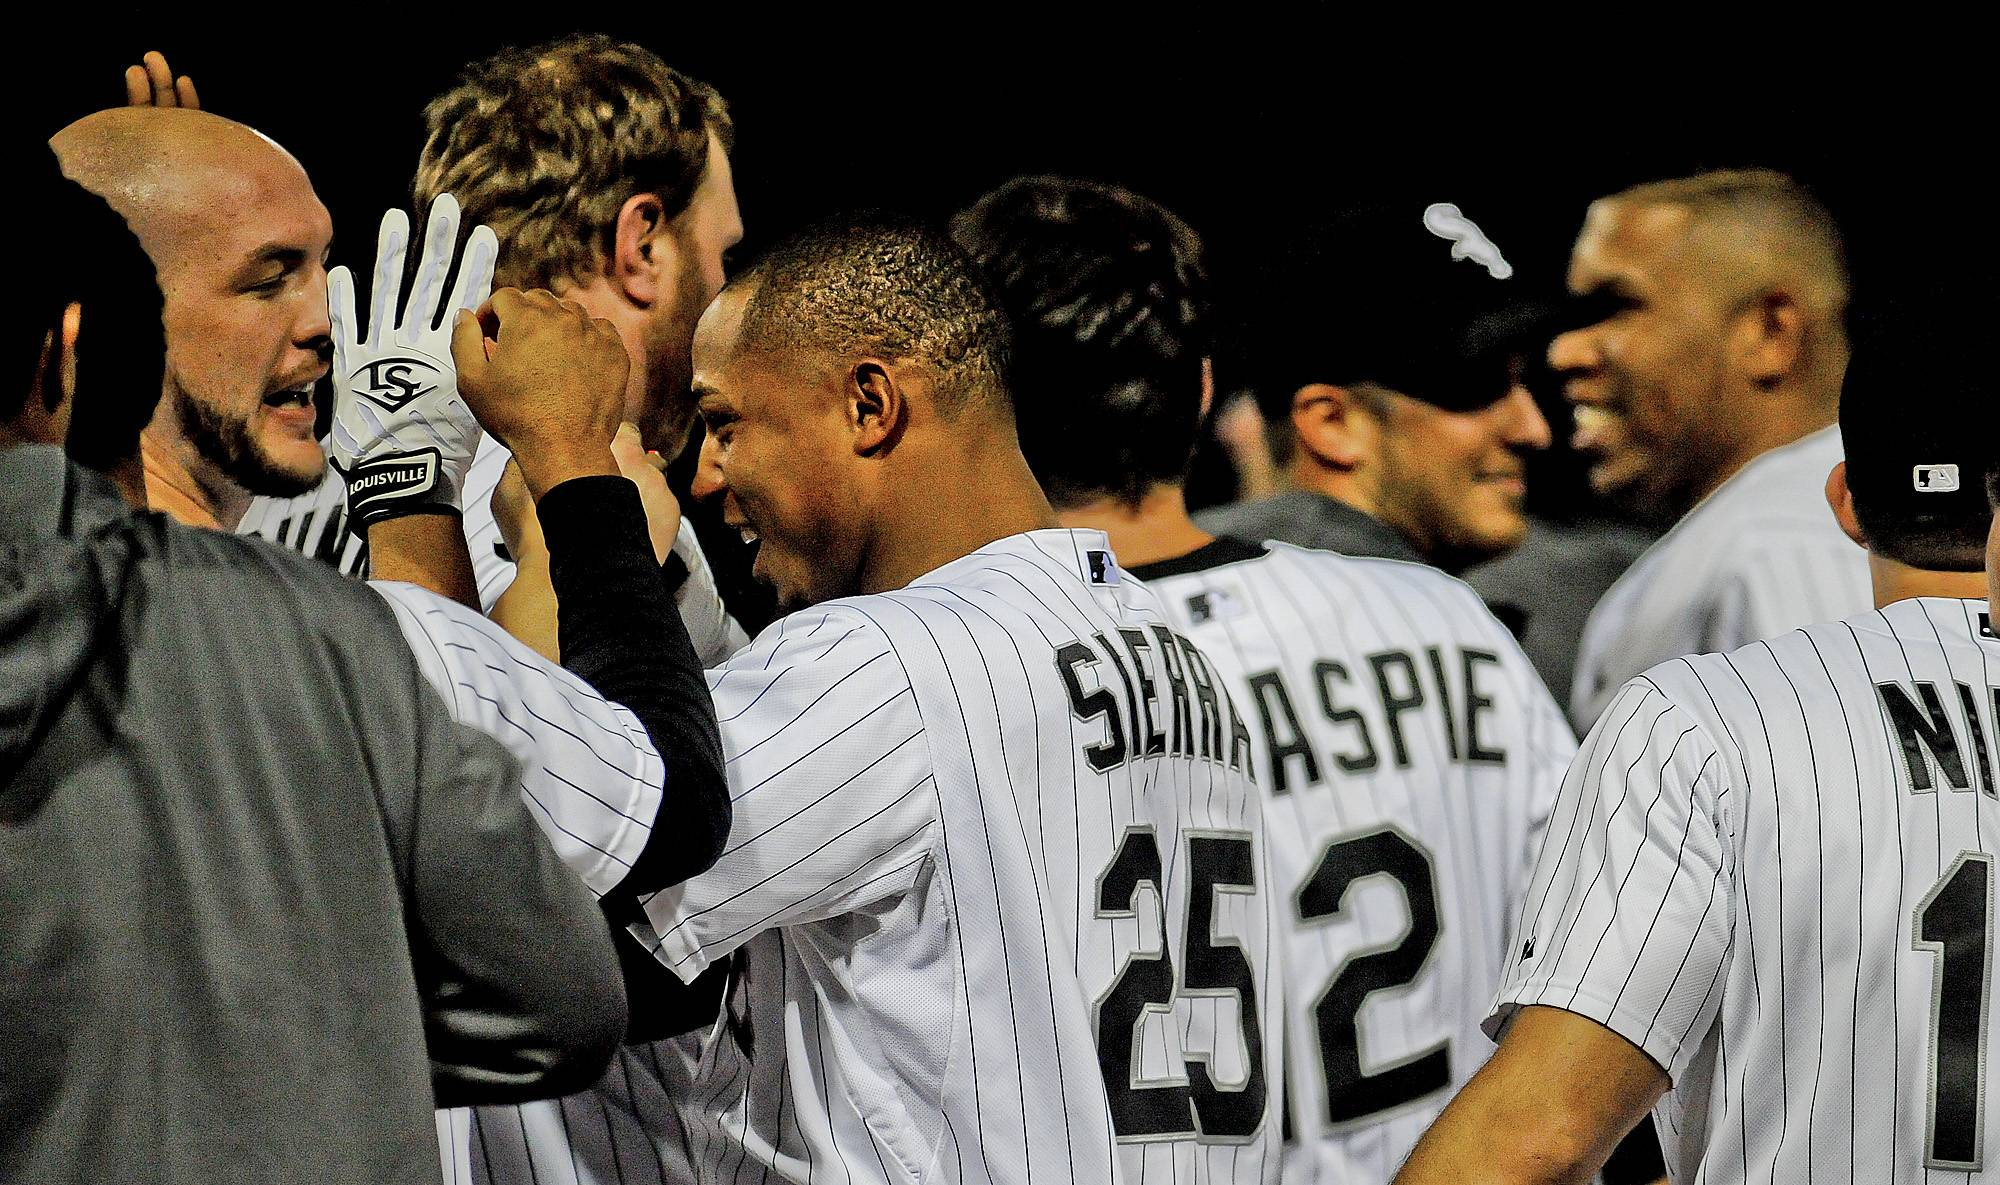 Chicago White Sox's Moises Sierra (25) is congratulated by teammates after hitting the game-winning single in the ninth inning of a baseball game against the Cleveland Indians in Chicago on Wednesday, May 28, 2014. (AP Photo/Matt Marton)